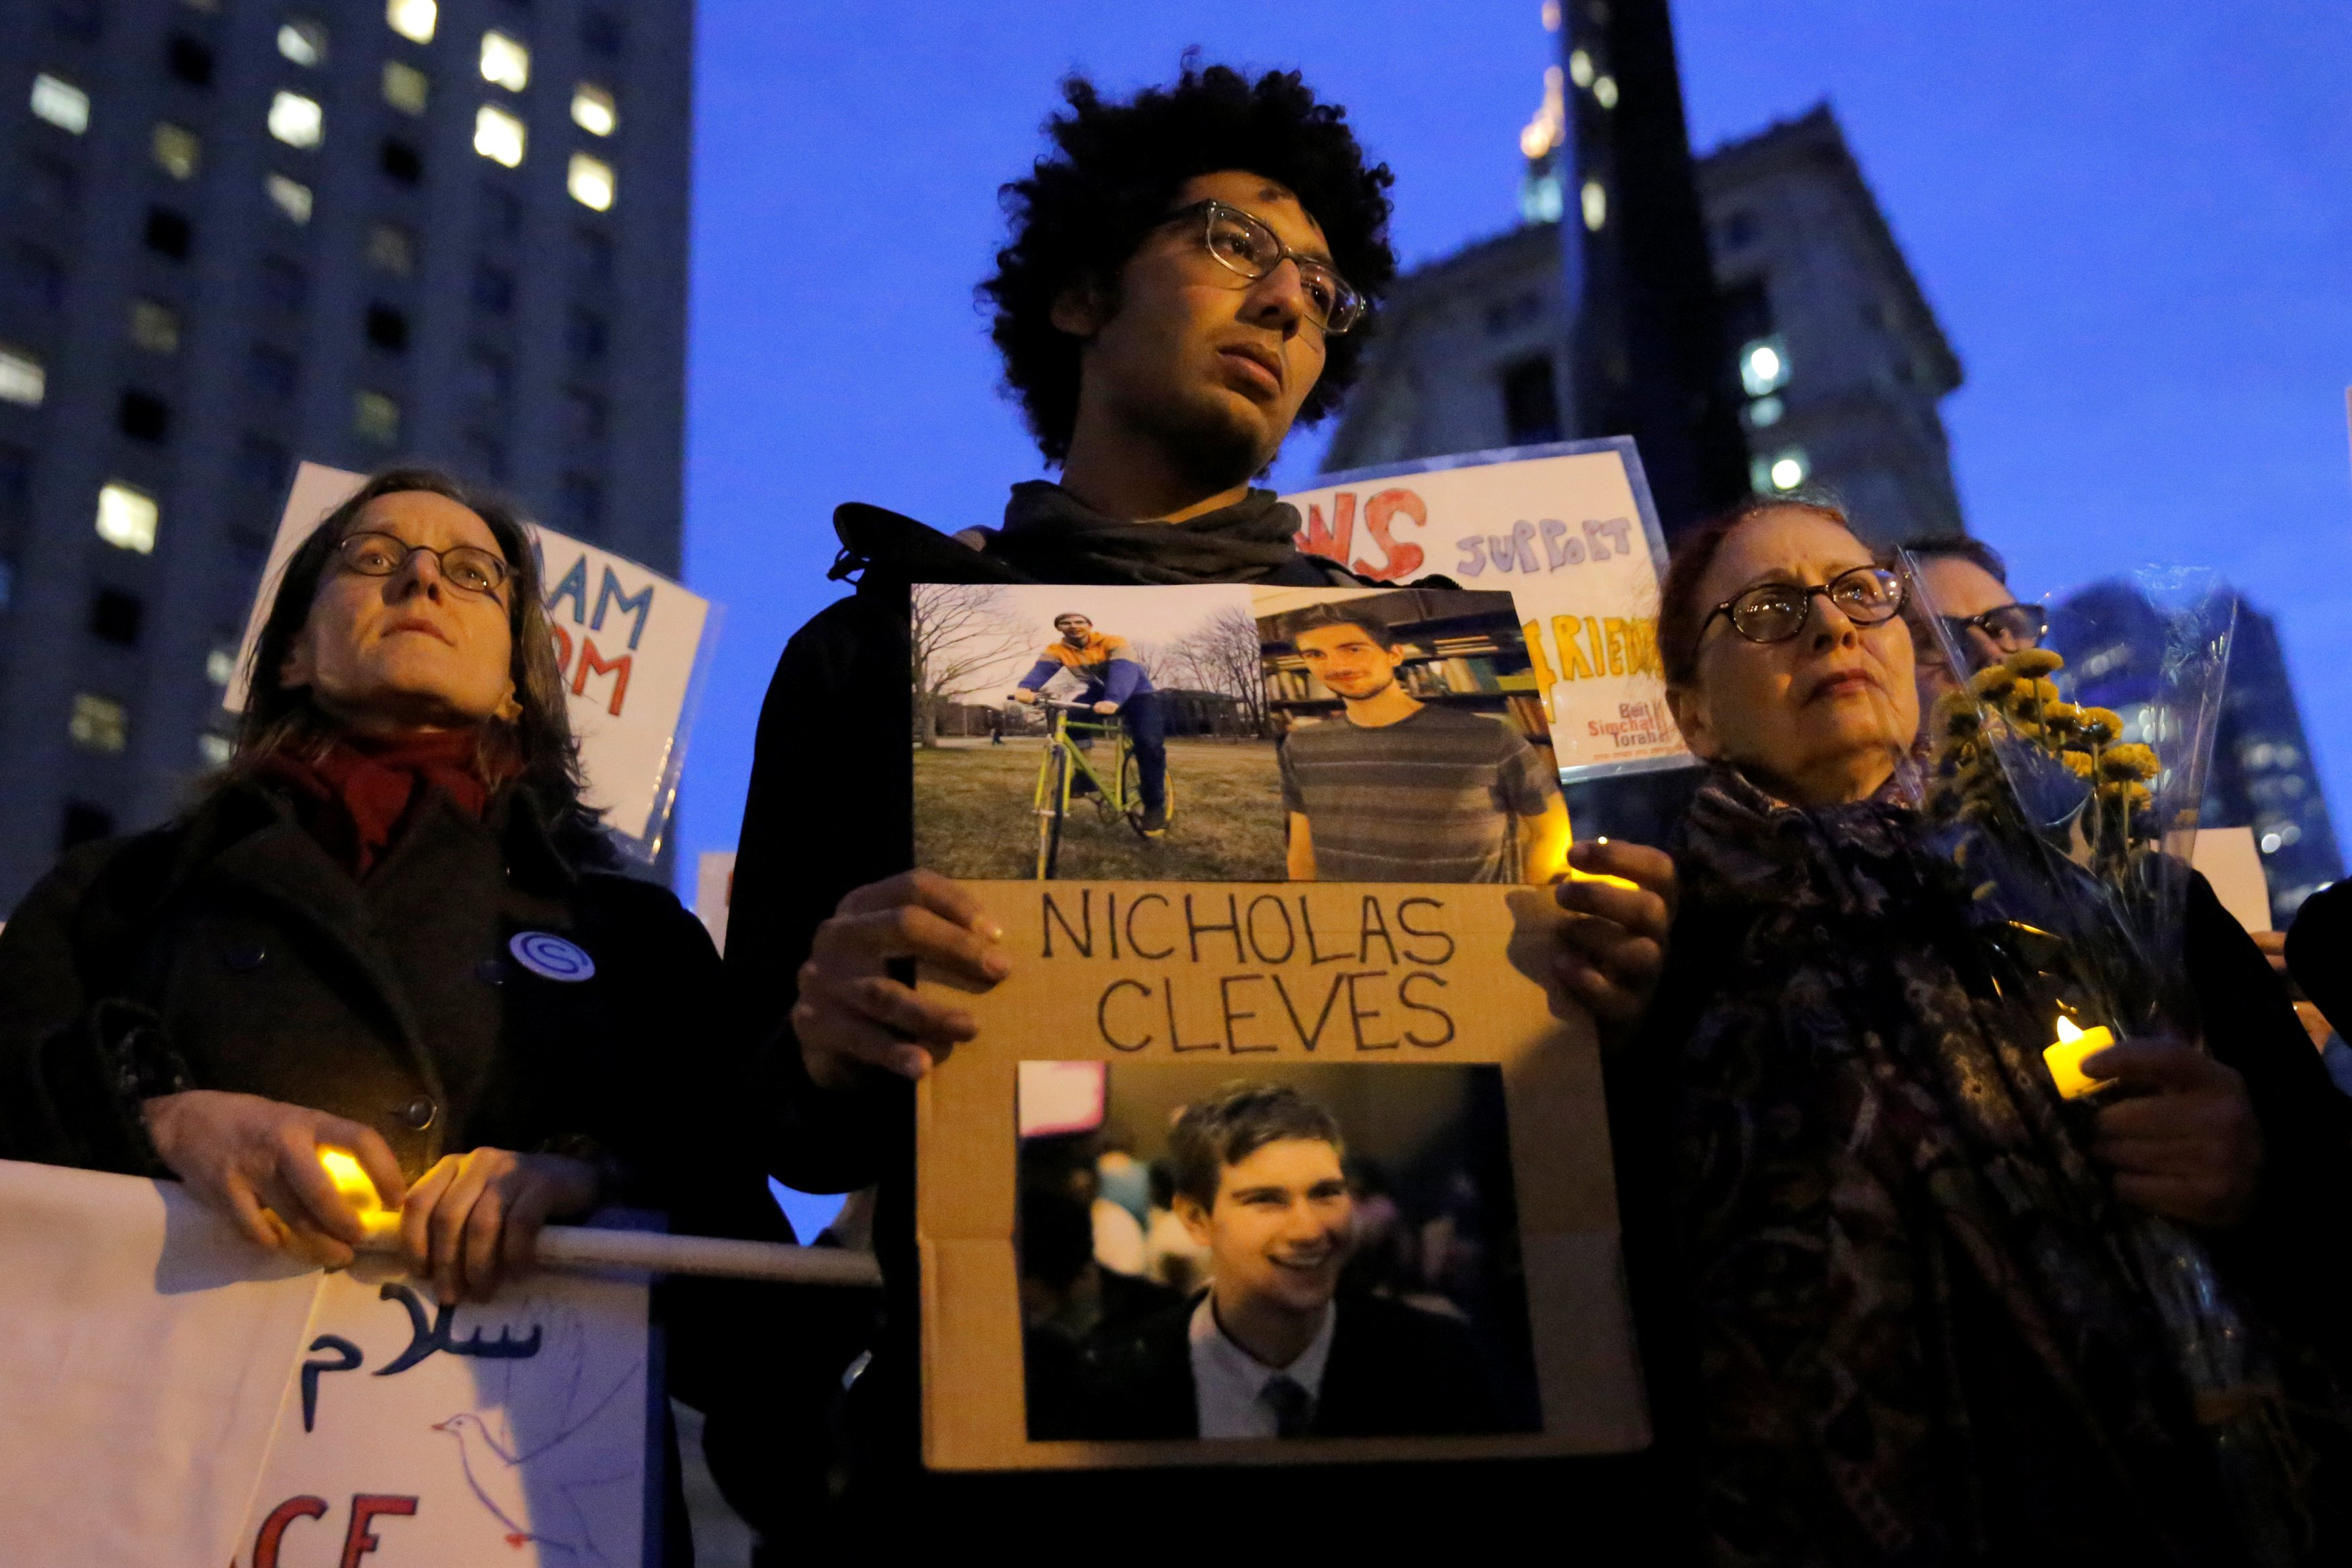 Image: Chancey stands with a sign featuring his friend and attack victim Cleves during a vigil in Foley Square in Manhattan